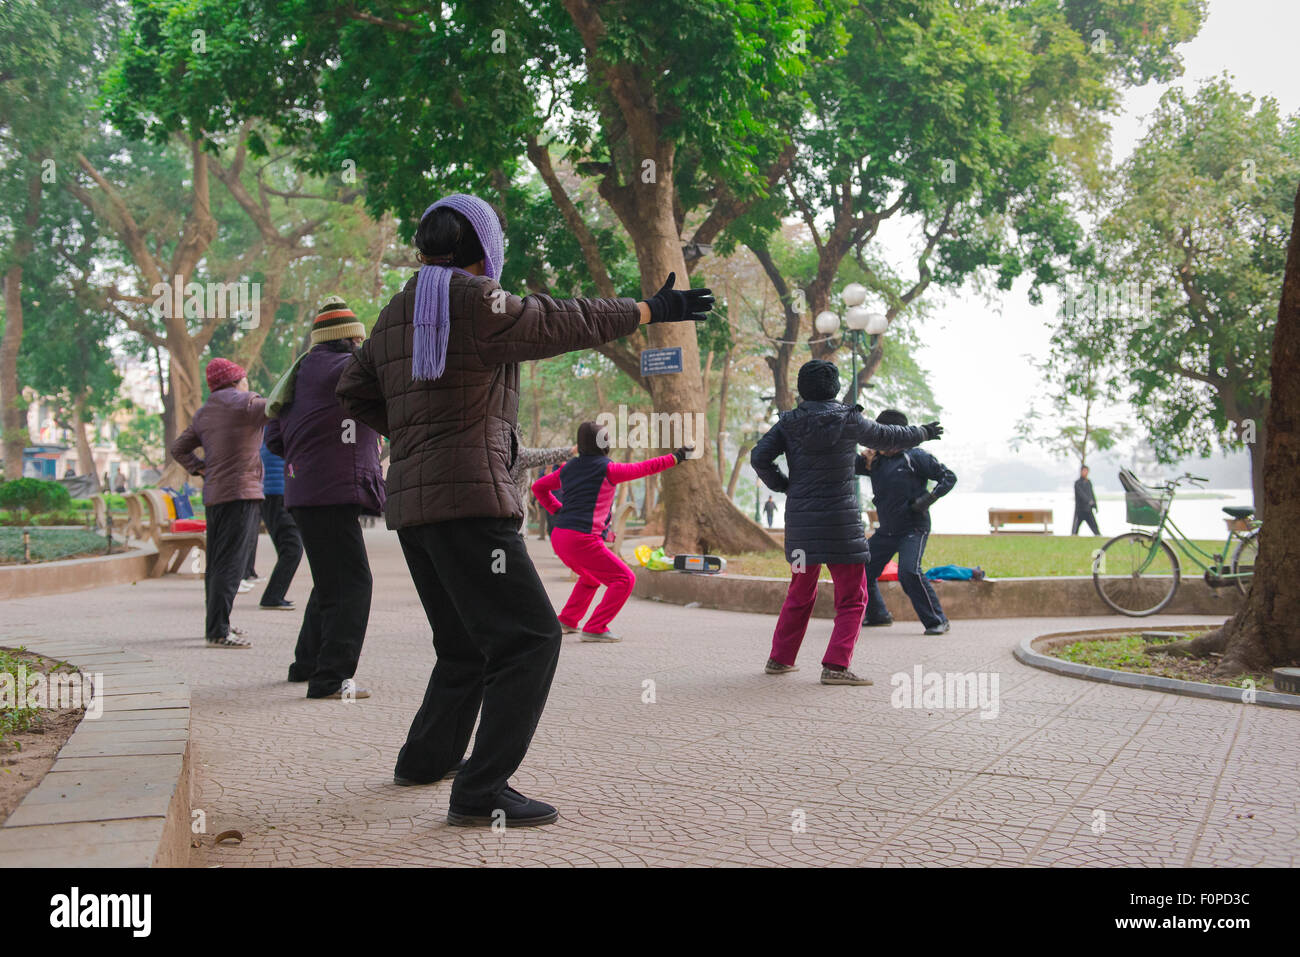 Hanoi tai chi, a group of middle aged women participate in an early morning tai chi session near Hoan Kiem Lake - Stock Image